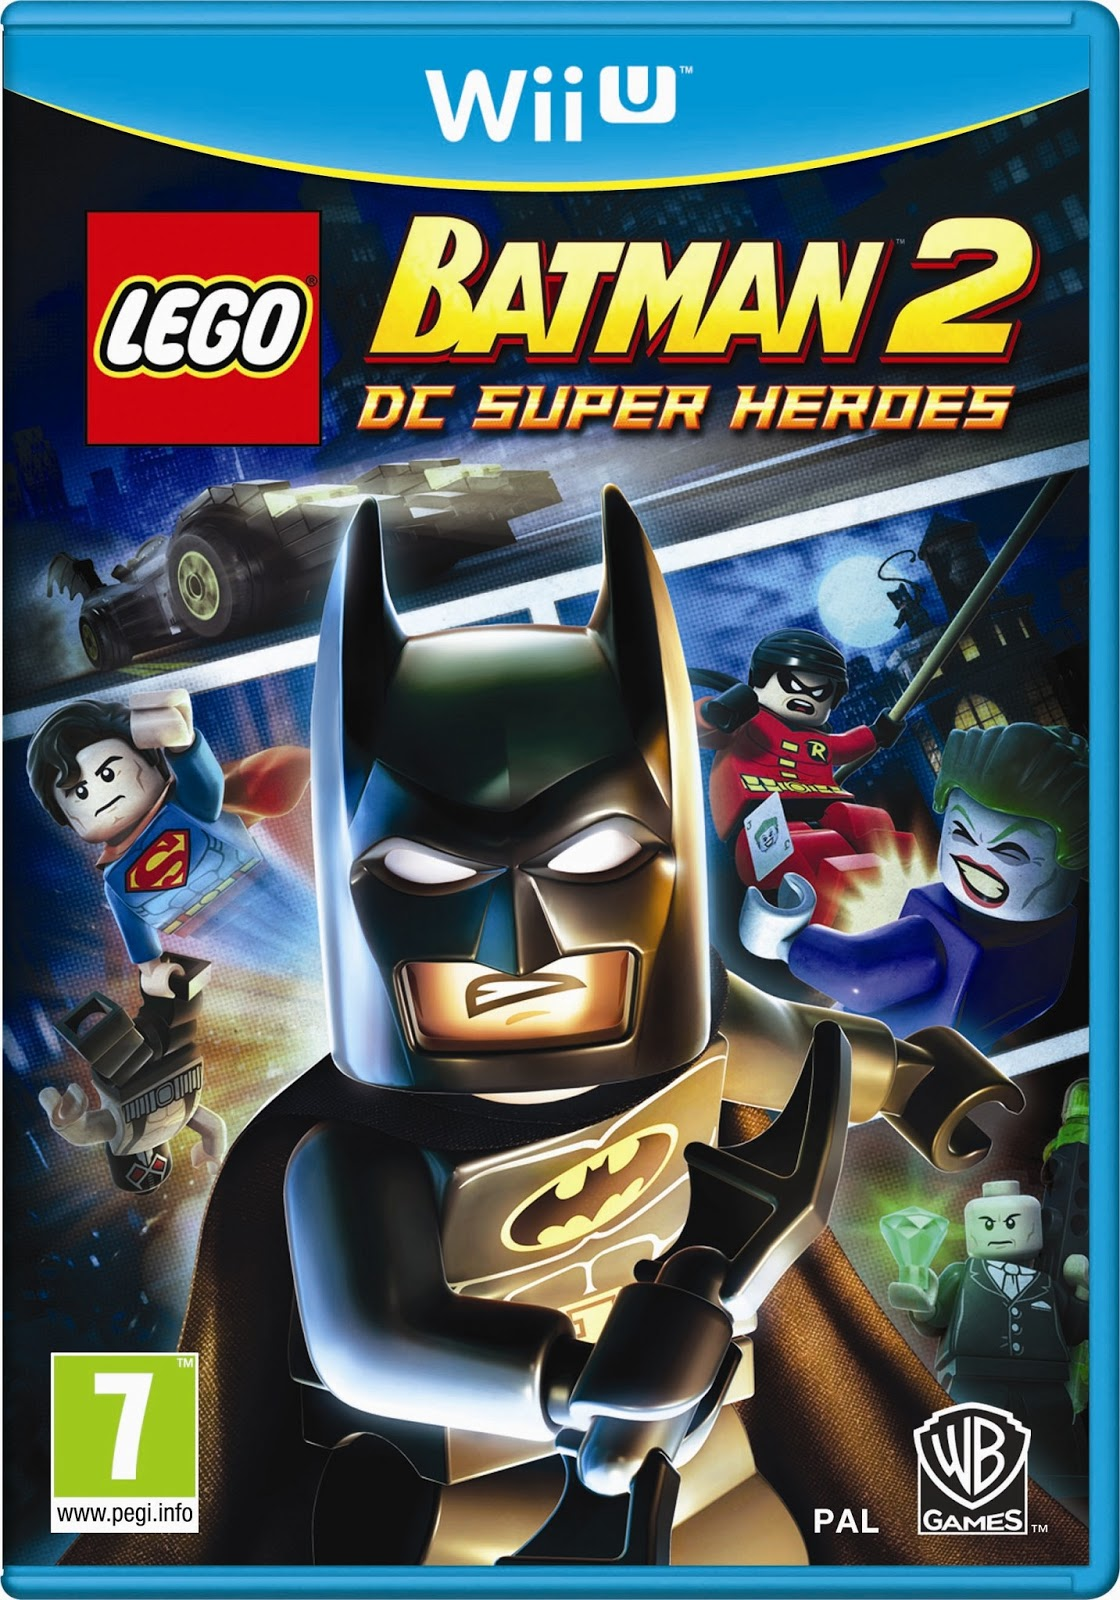 Lego batman 2 dc super heroes box art wii u 02